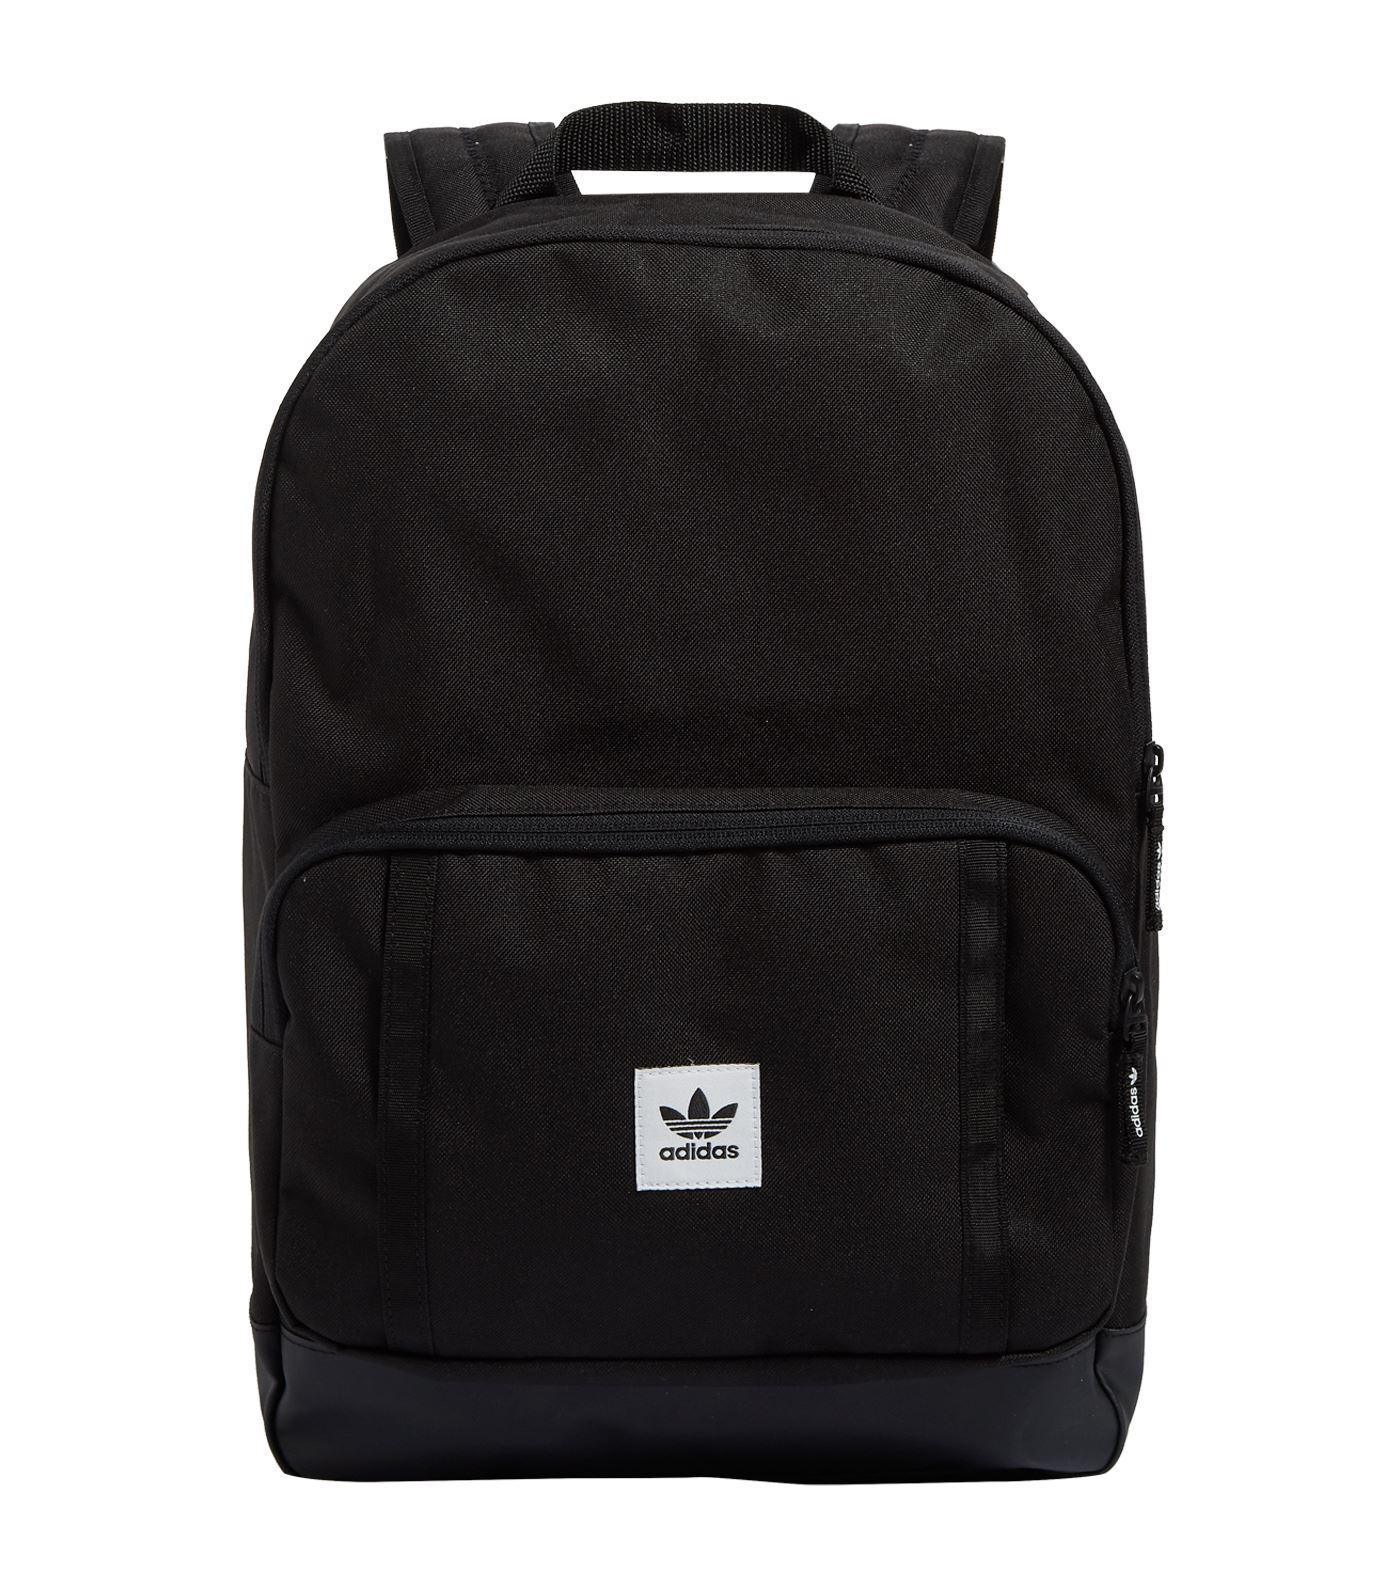 Adidas Originals Classic Backpack in Black - Lyst 0e093decf8